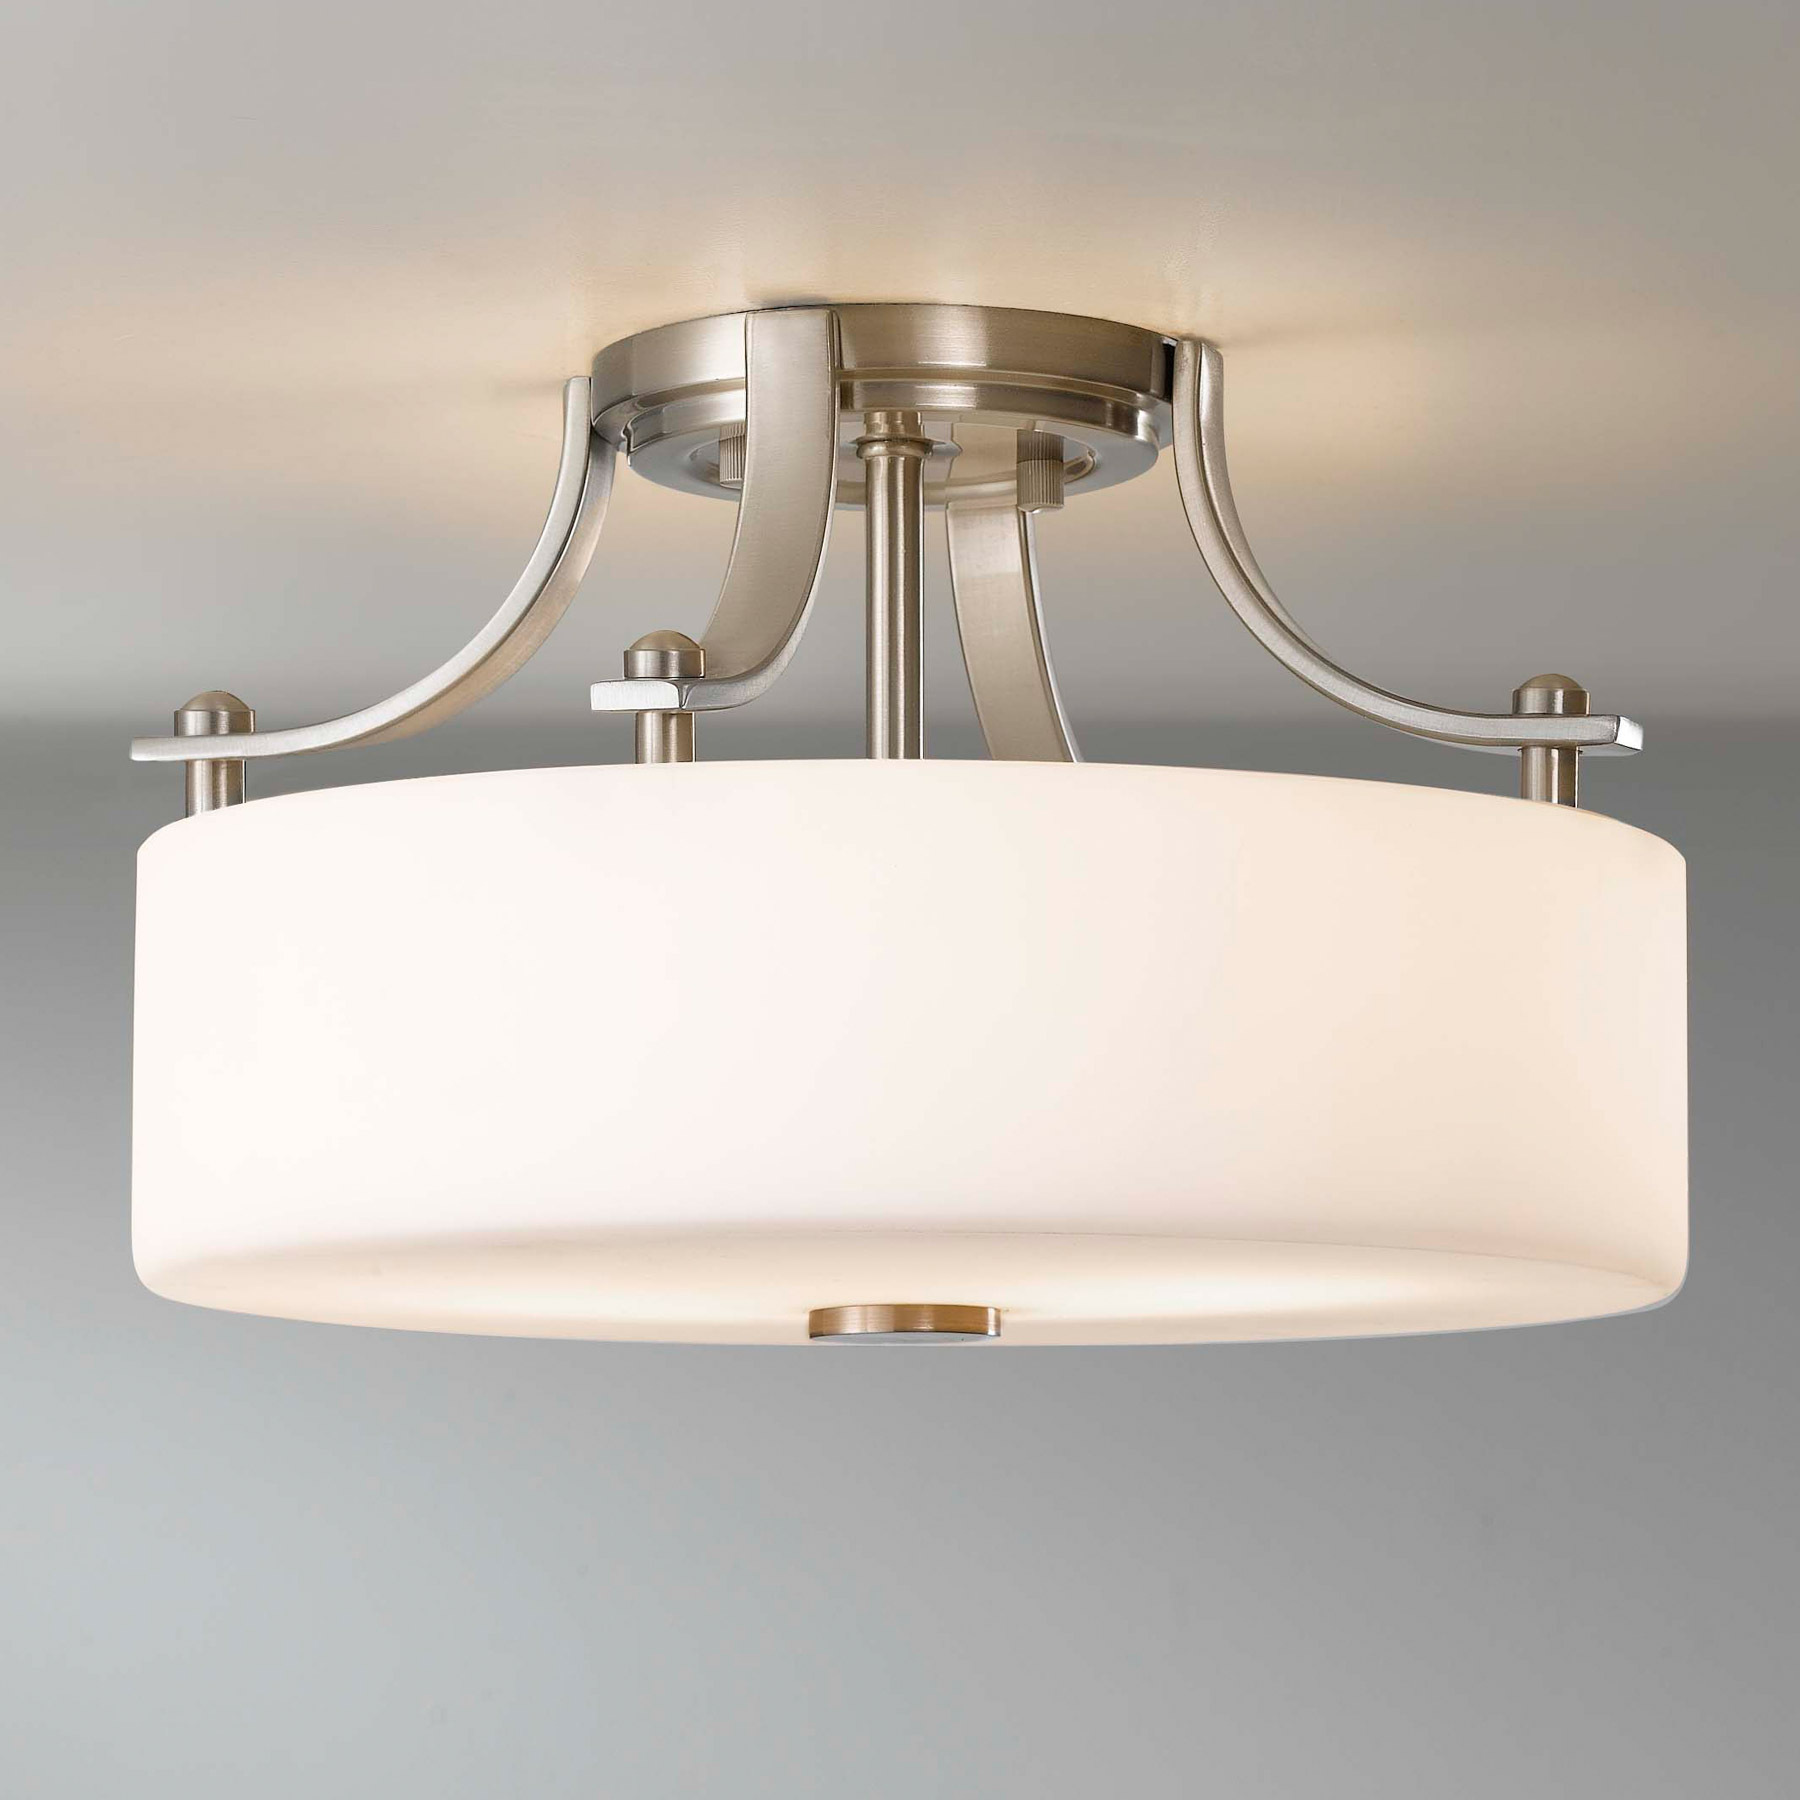 Attractive semi flush ceiling light for home lighting design with brushed nickel semi flush ceiling light